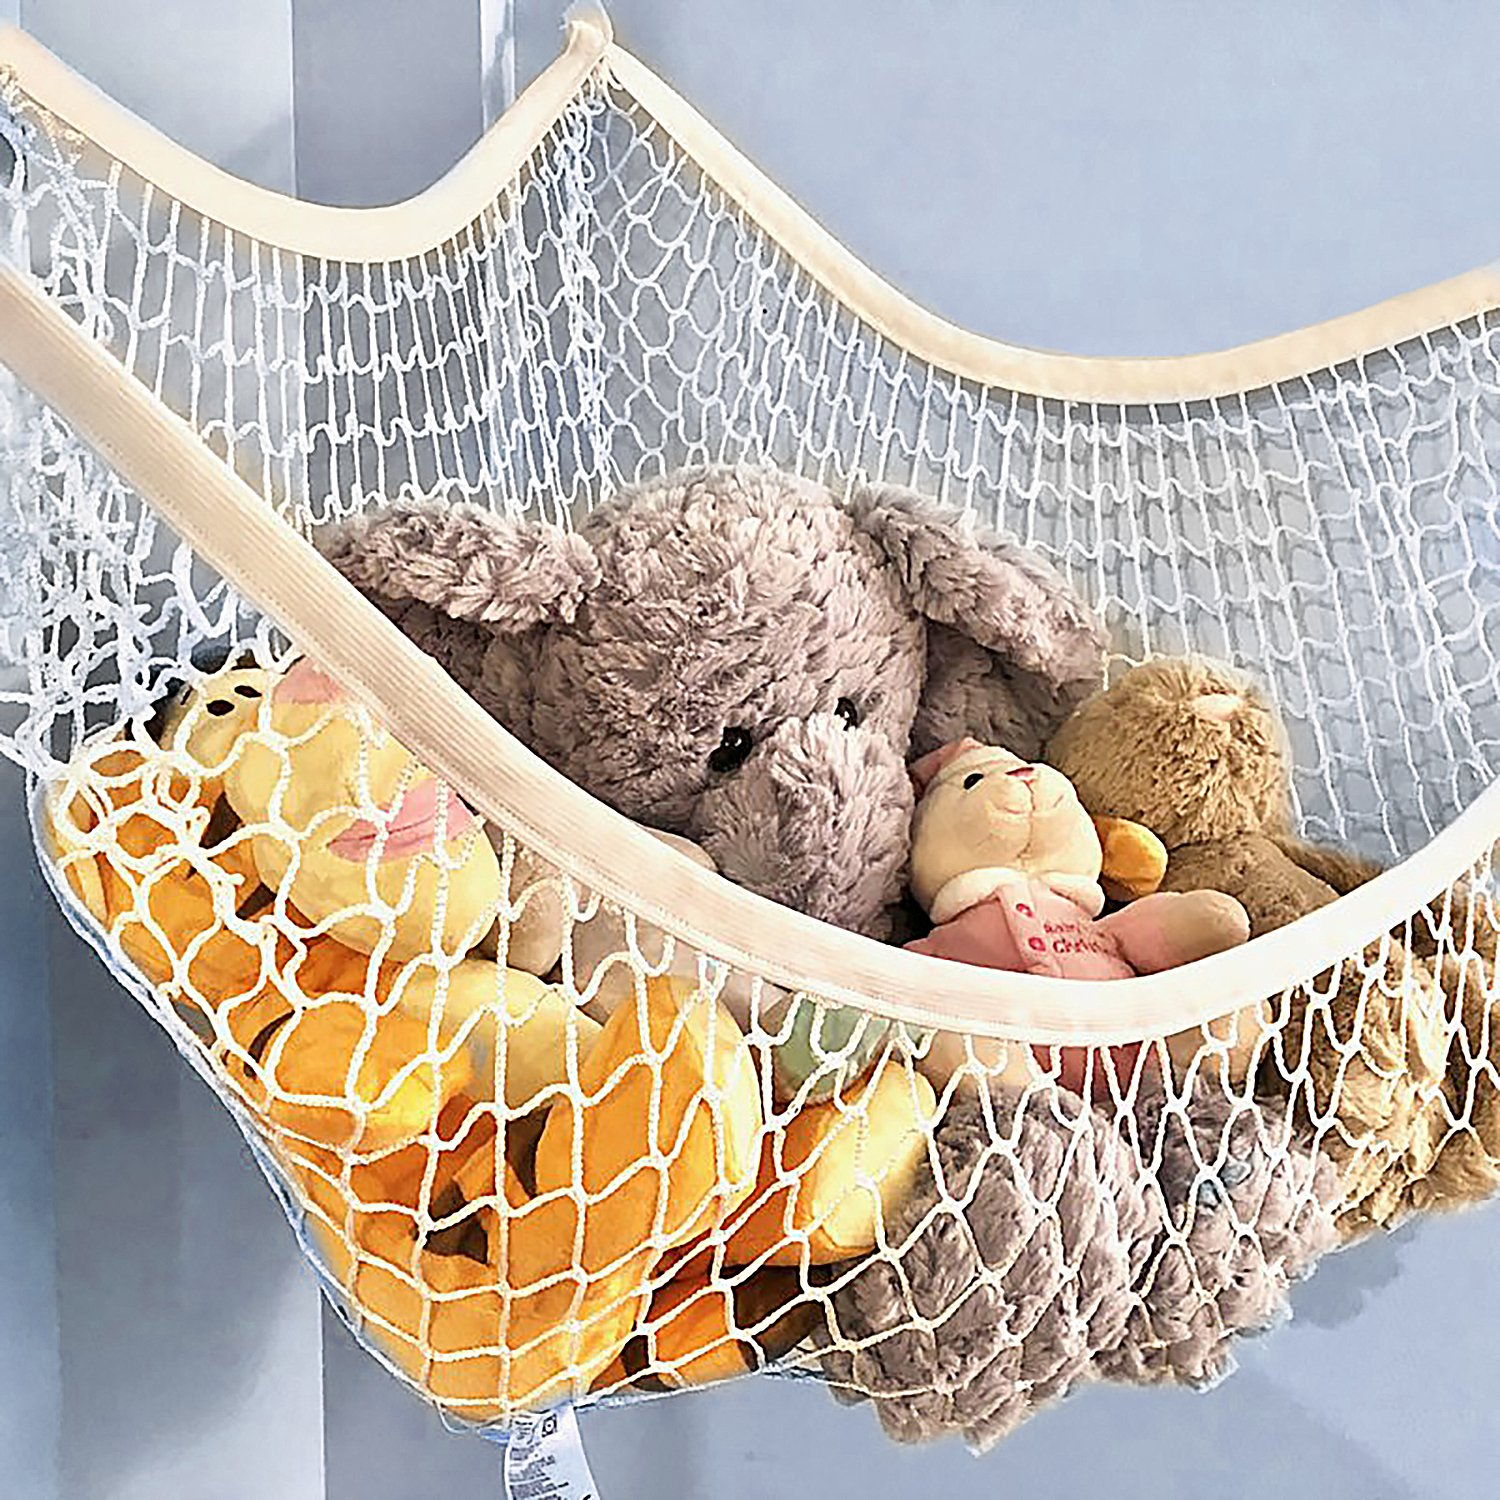 Scoot 'n Play Stuffed Animal Hammock | 76 cm x 55 cm x 56 cm | Toy Storage Basket | Toy Box | Stuffed Animal Toy Hammock | Nursery Organizer | Toy Storage Organizer | Toy Bin